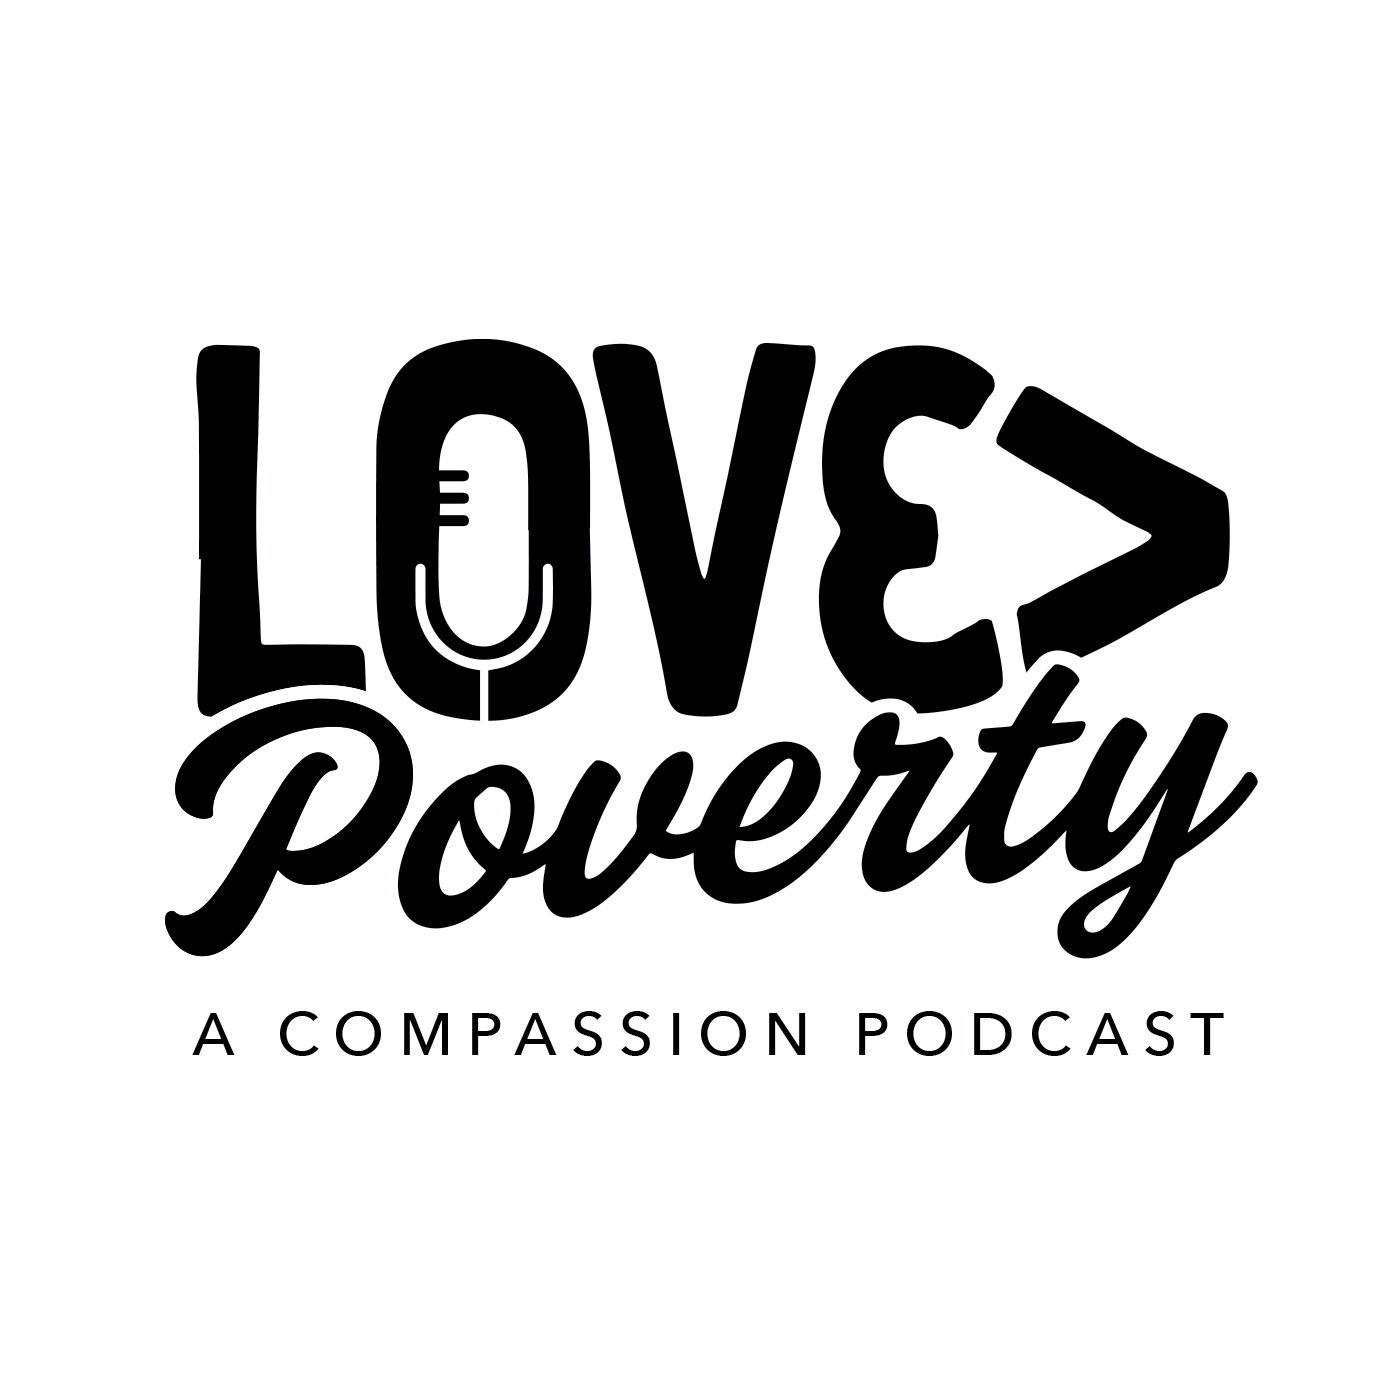 Love>Poverty: A Compassion Podcast show art